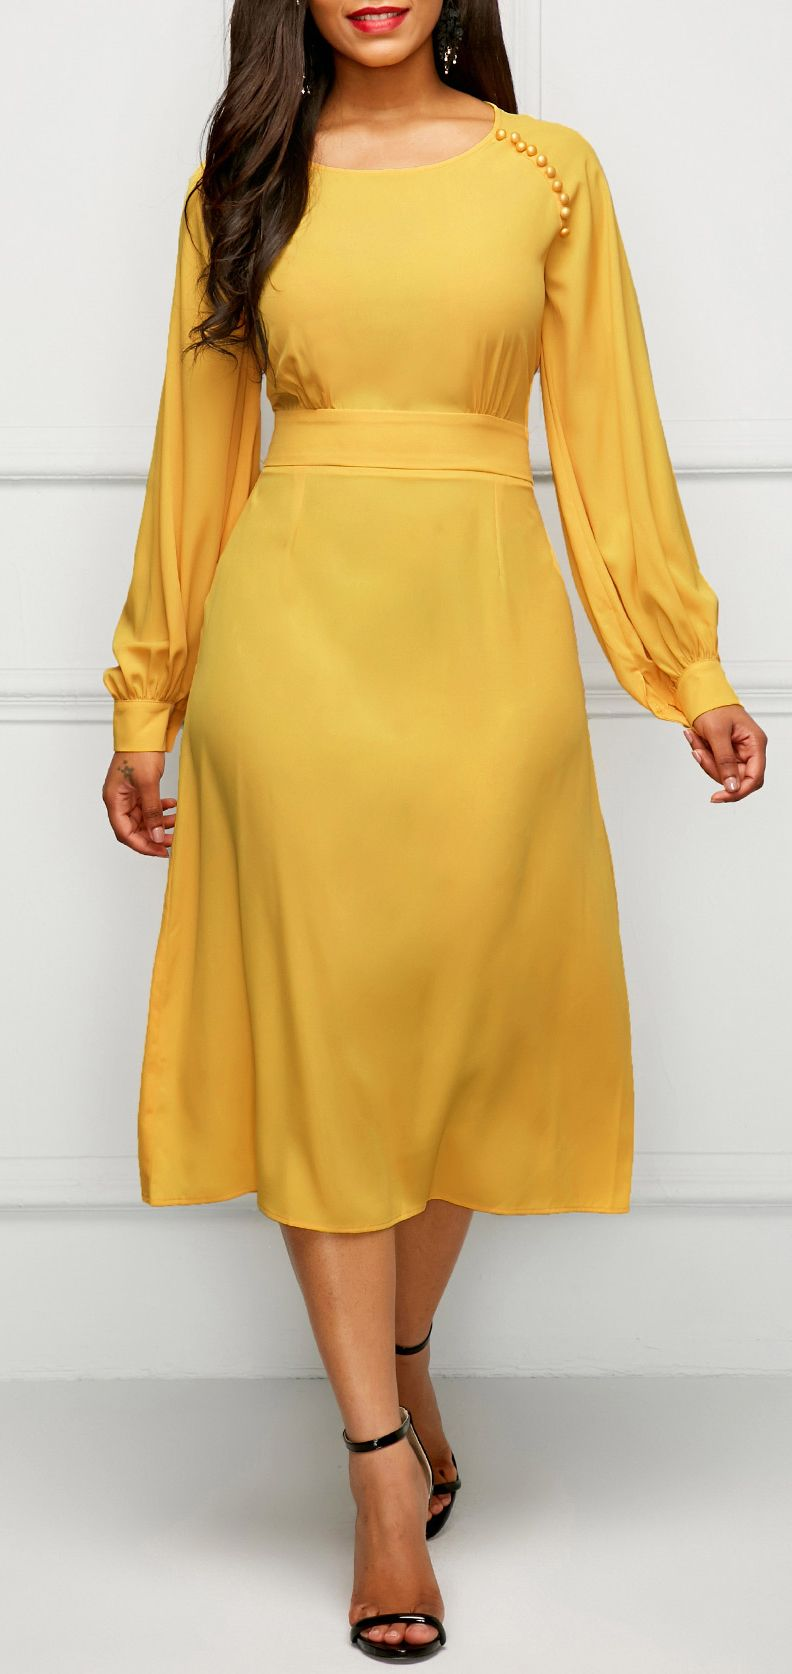 Band Waist Long Sleeve Yellow Dress Yellow dress Clothes and Clothing